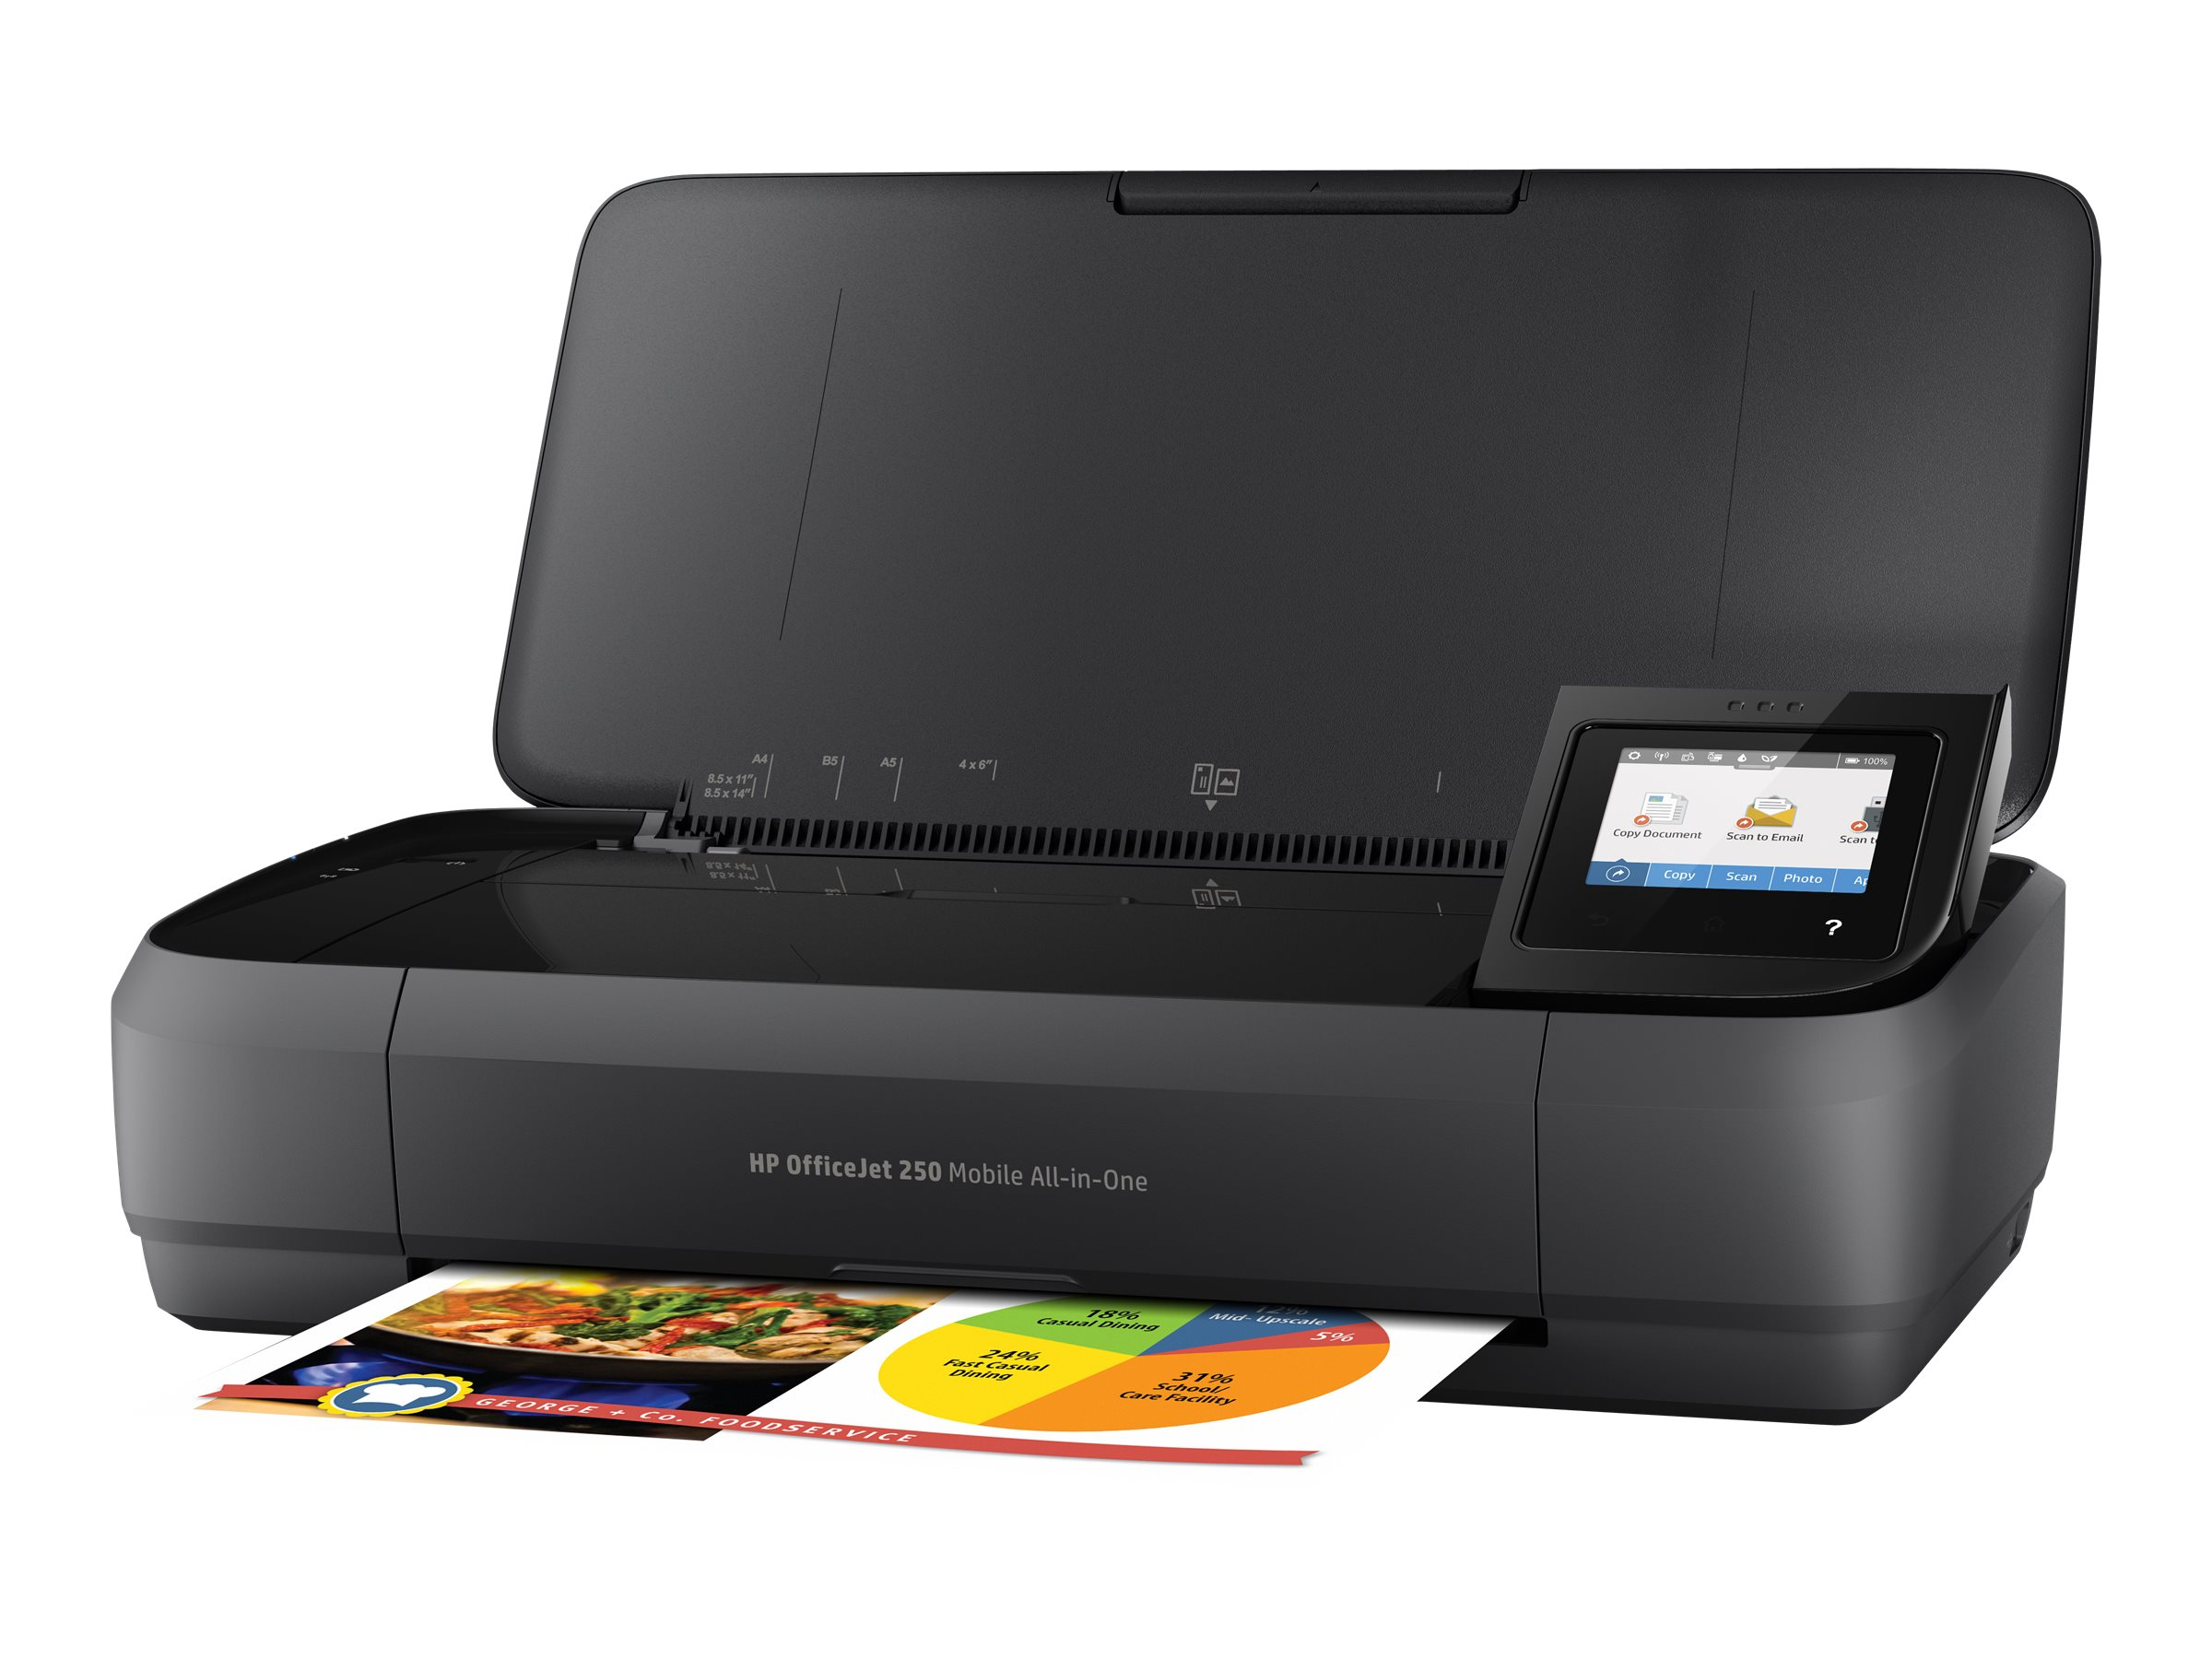 HP Officejet 250 Mobile All-in-One - Multifunktionsdrucker - Farbe - Tintenstrahl - Legal (216 x 356 mm)